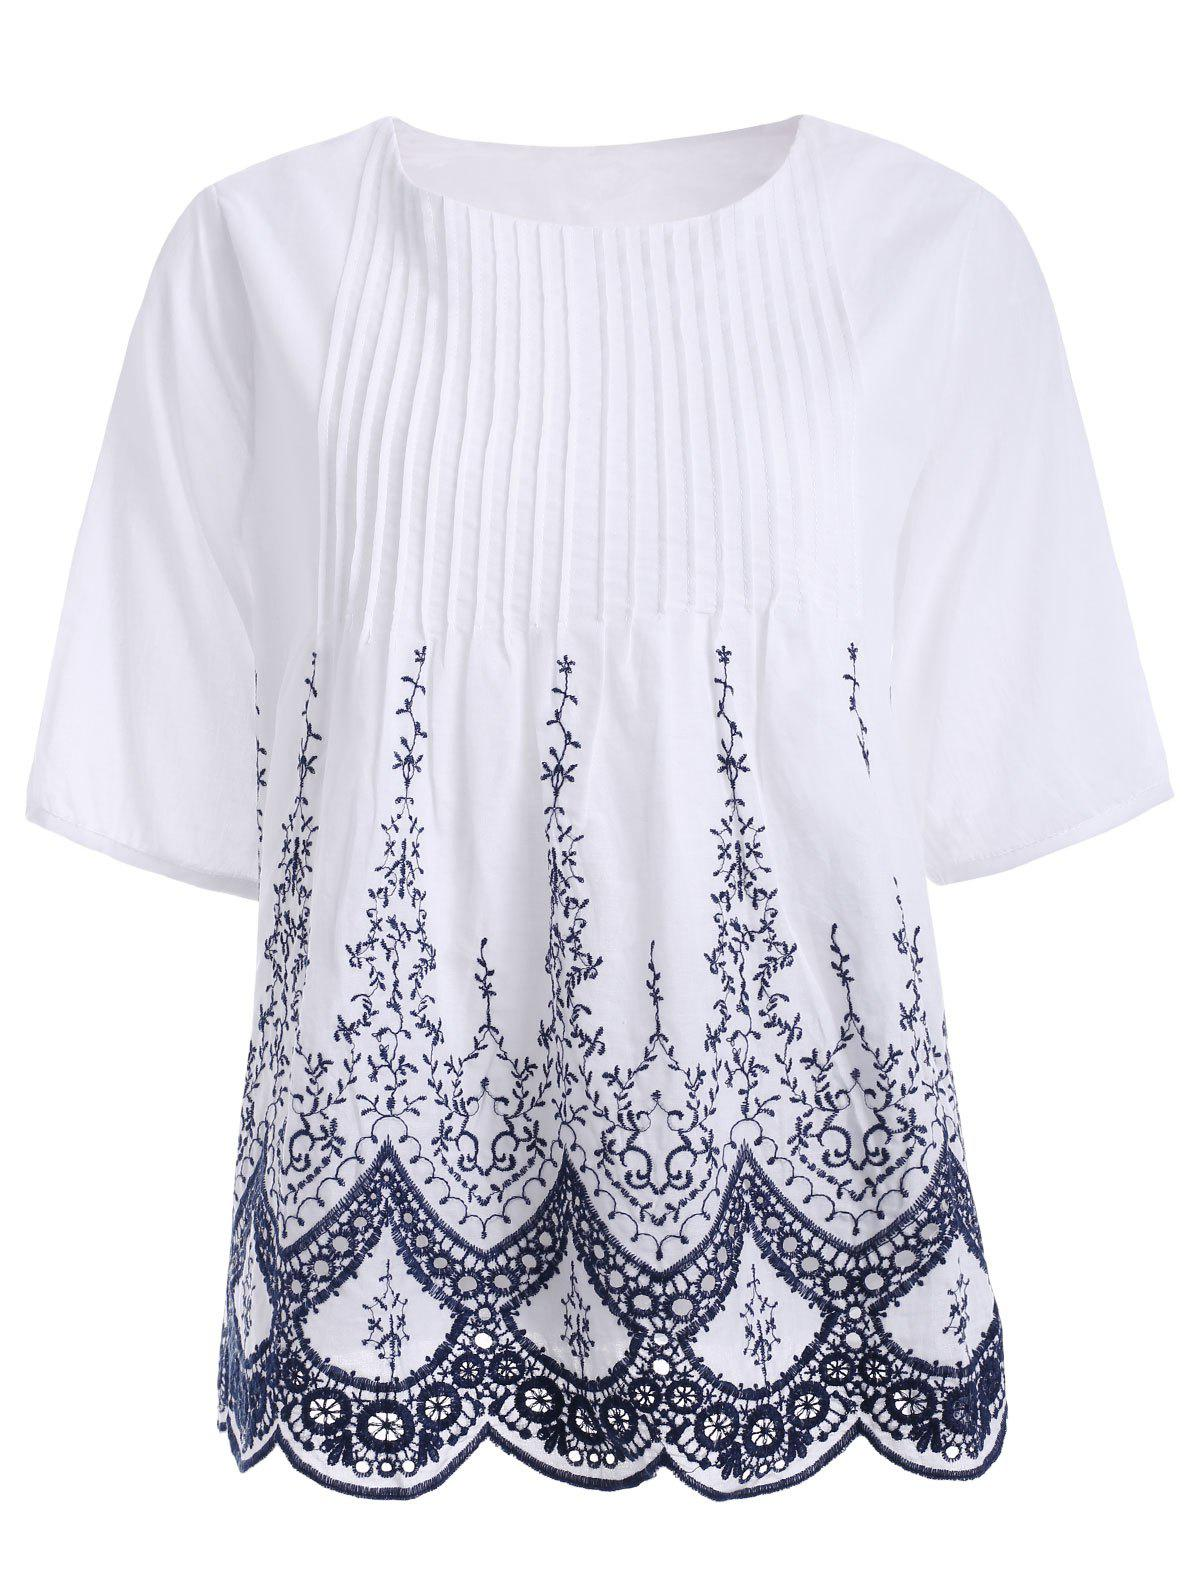 Ladylike Floral Embroidered Ribbed Crochet Blouse For Women - WHITE ONE SIZE(FIT SIZE XS TO M)